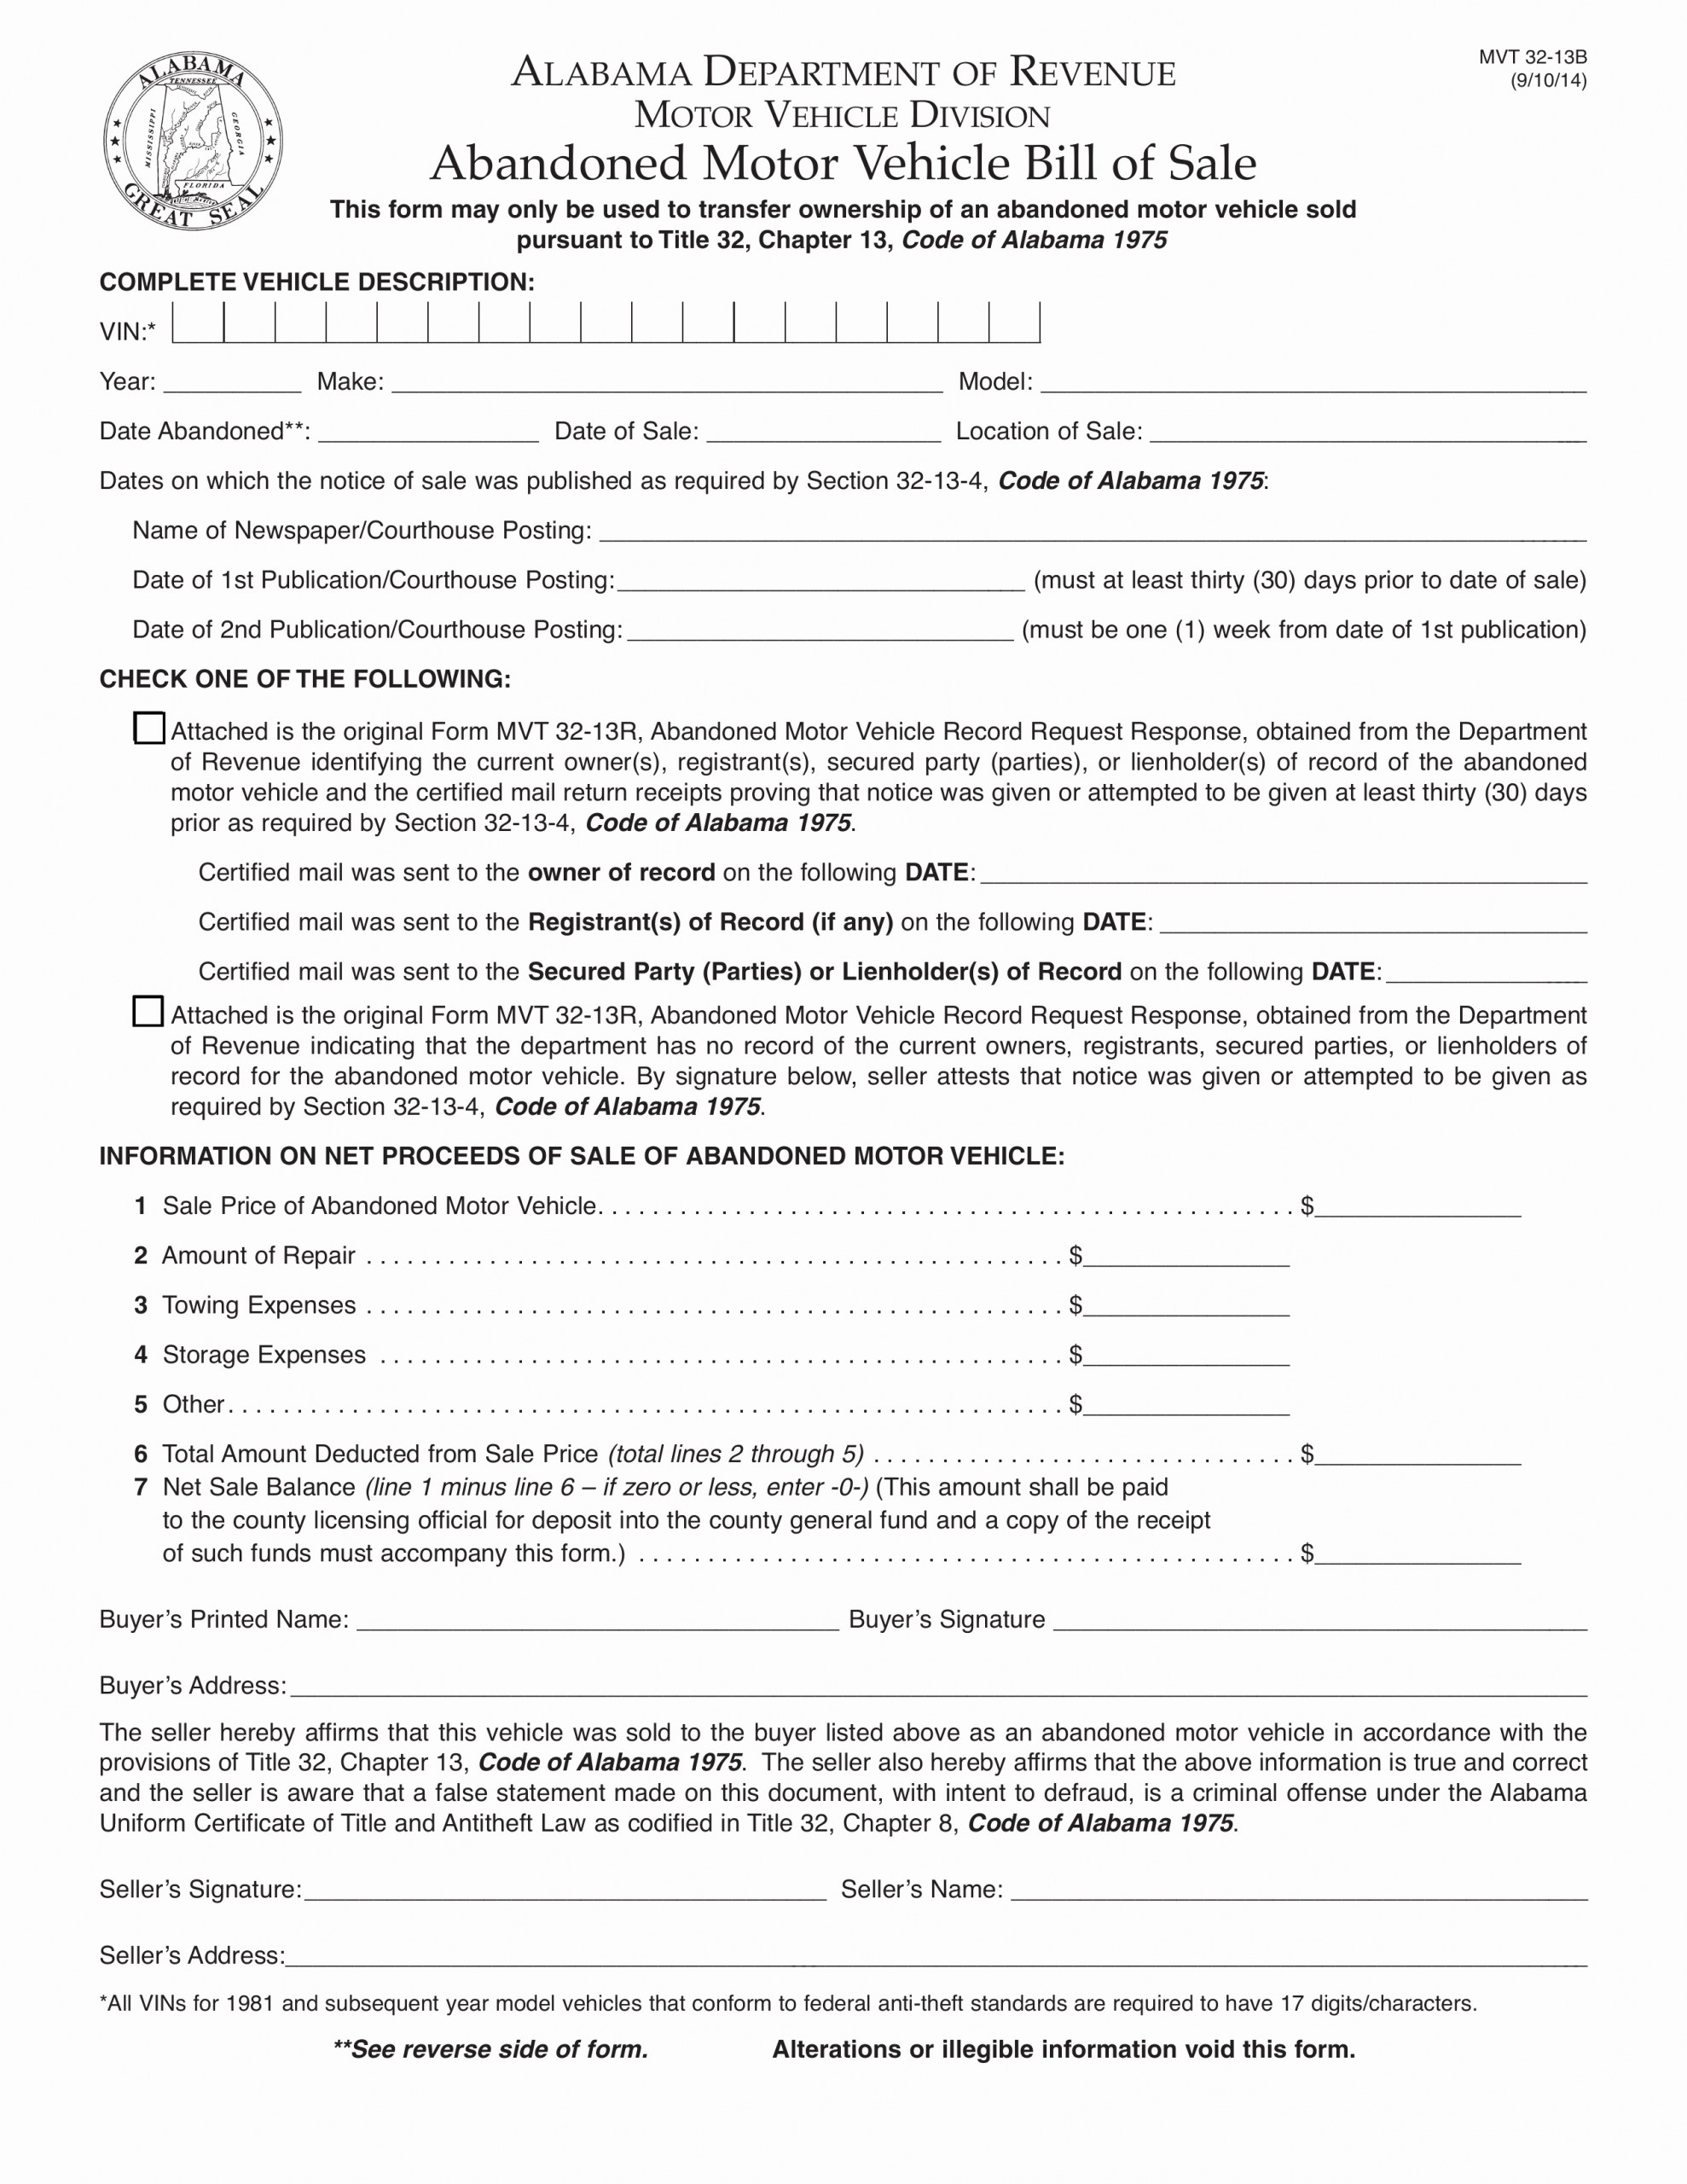 Alabama Bill Of Sale for Vehicle Lovely Alabama Abandoned Motor Vehicle Bill Of Sale form